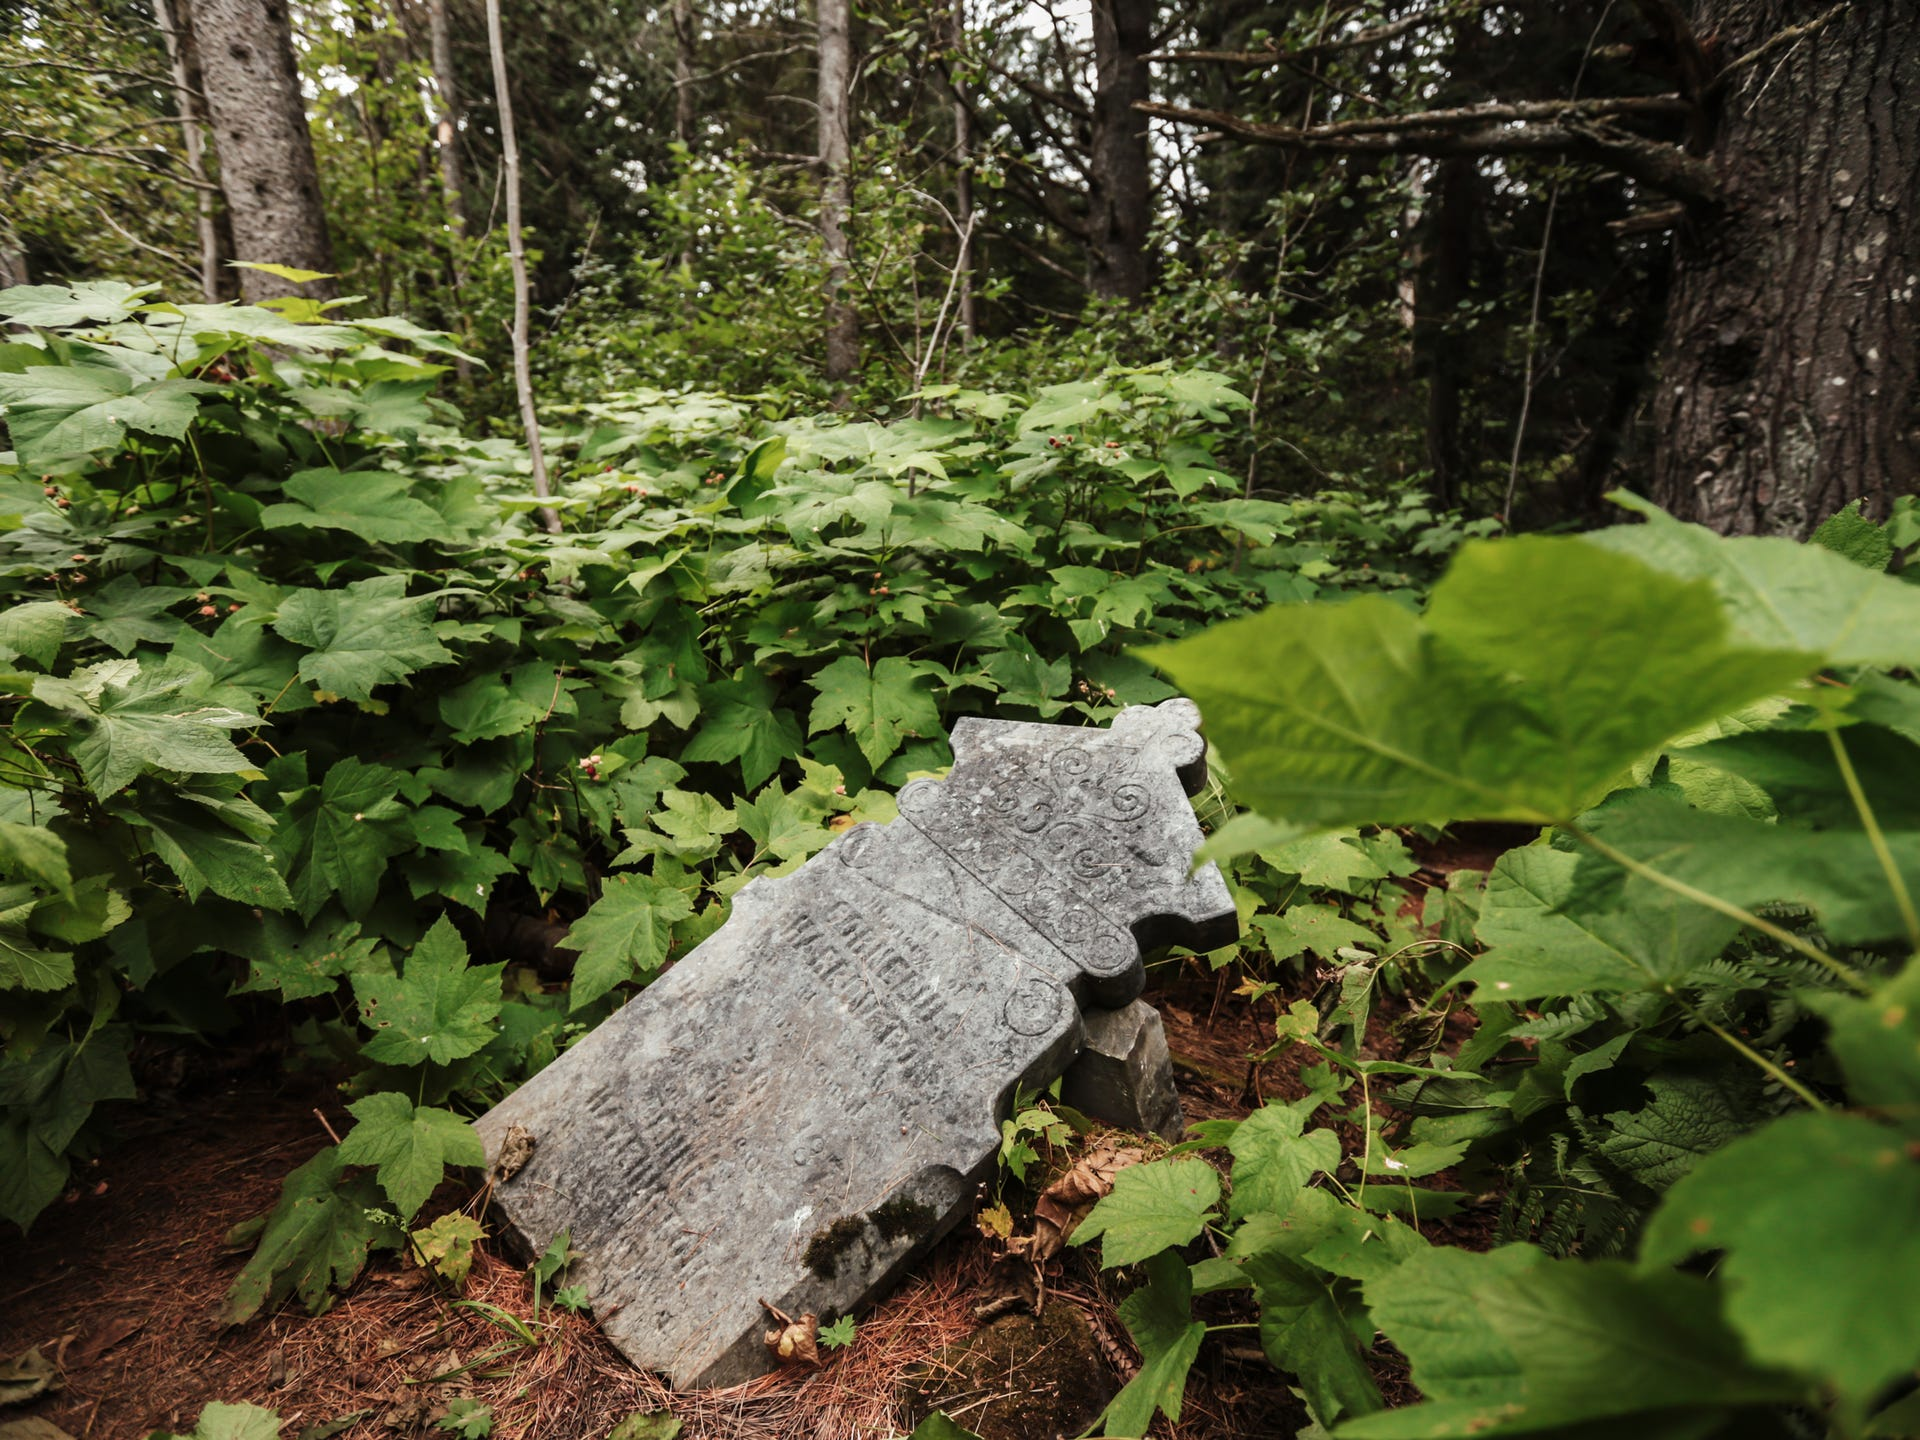 Tombstones poke out from the underbrush in a forest